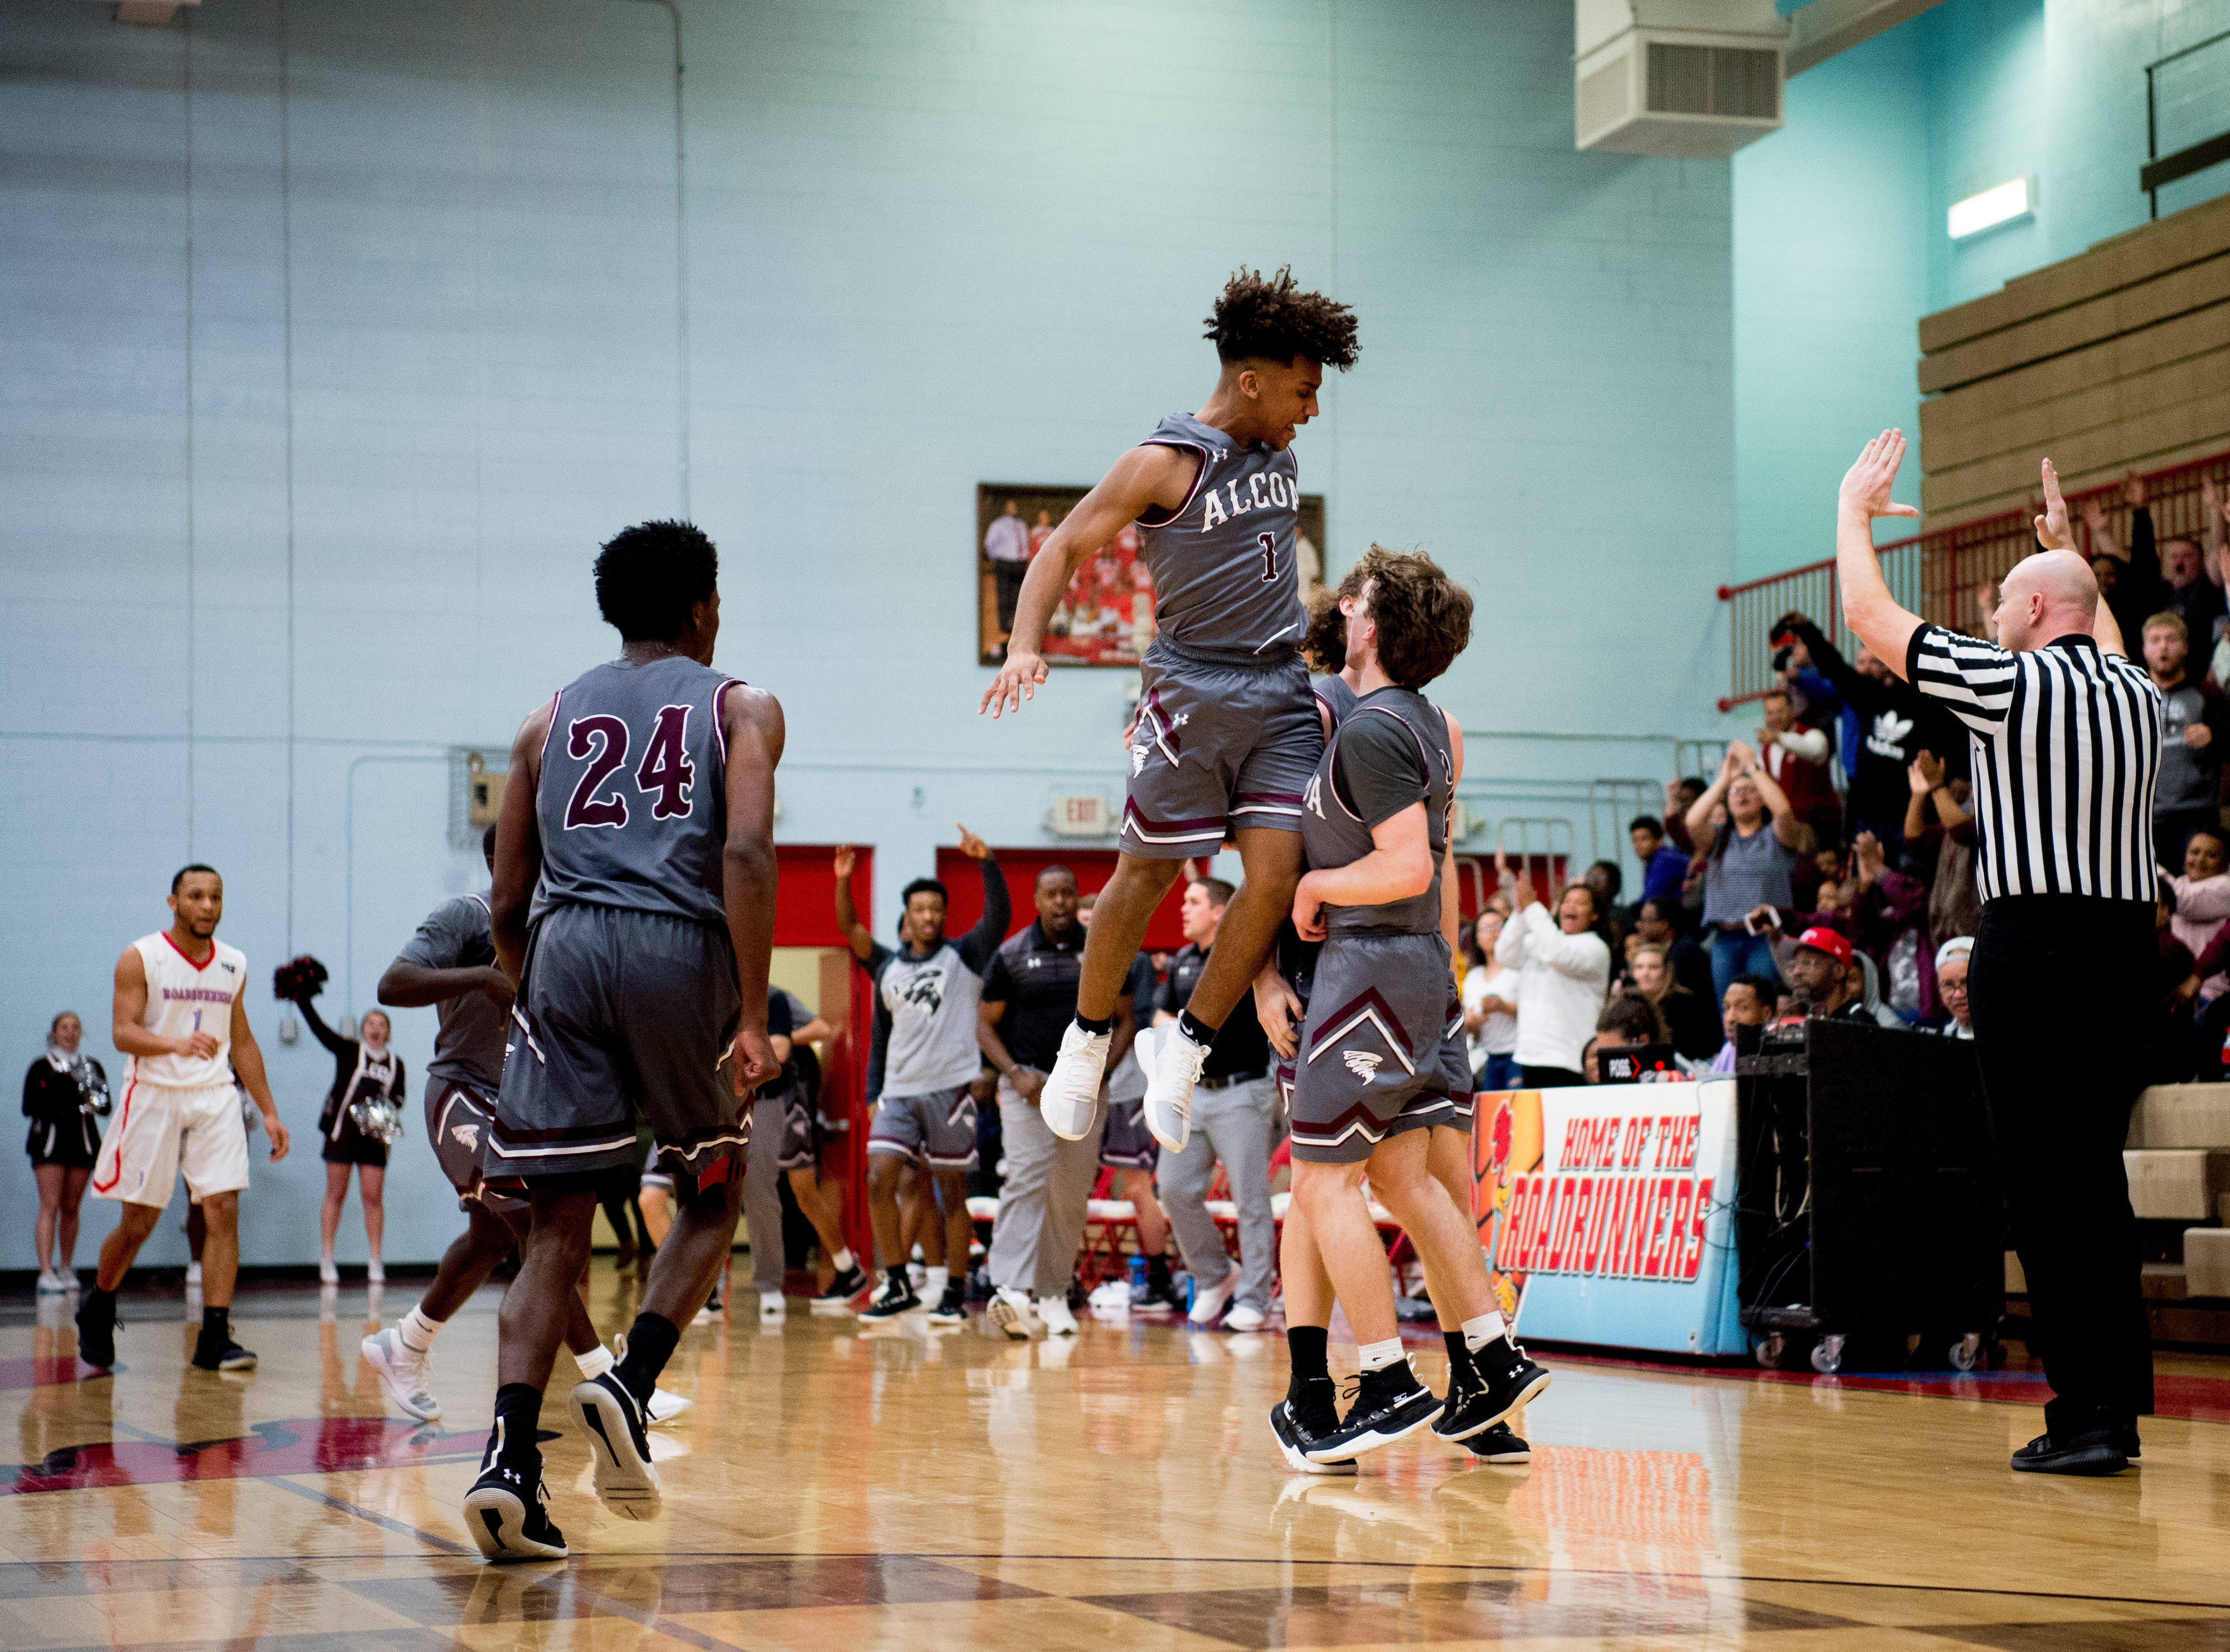 Alcoa's Tyren McNear (1) congratulates Garrett Rogers (2) on his point at the end of the second quarter during a game between Austin-East and Alcoa at Austin-East High School in Knoxville, Tennessee on Friday, January 18, 2019.